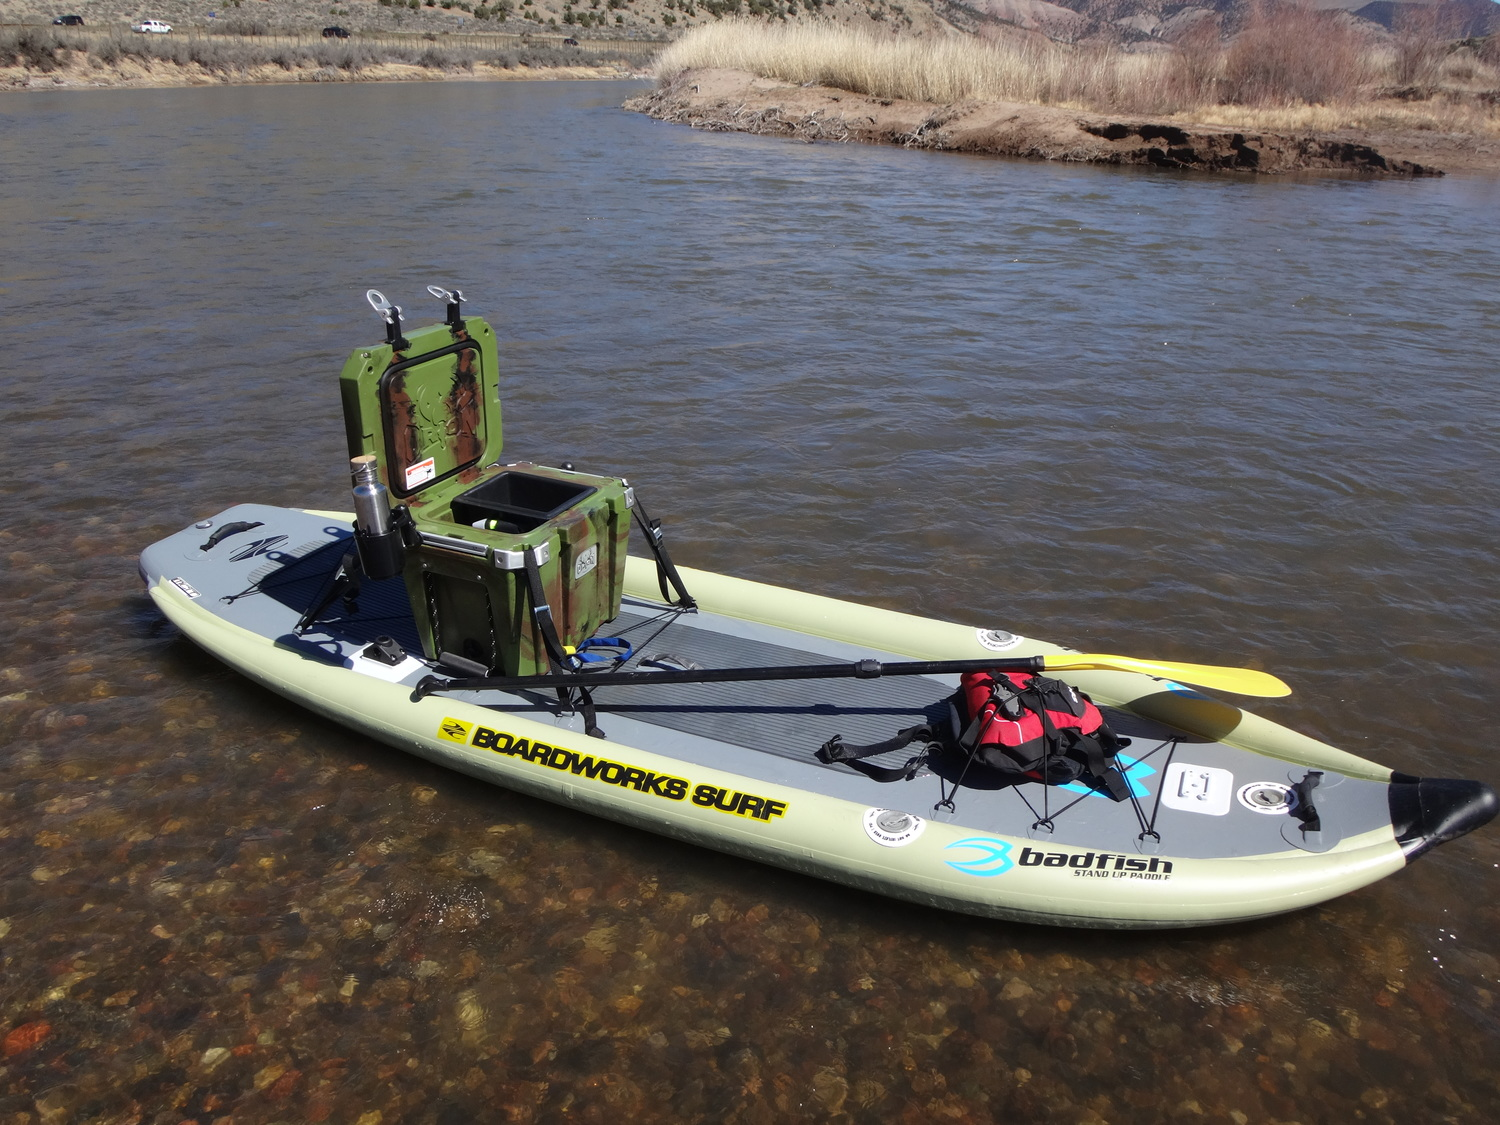 Stand up paddle board fly fishing stand up paddle board for Home source com